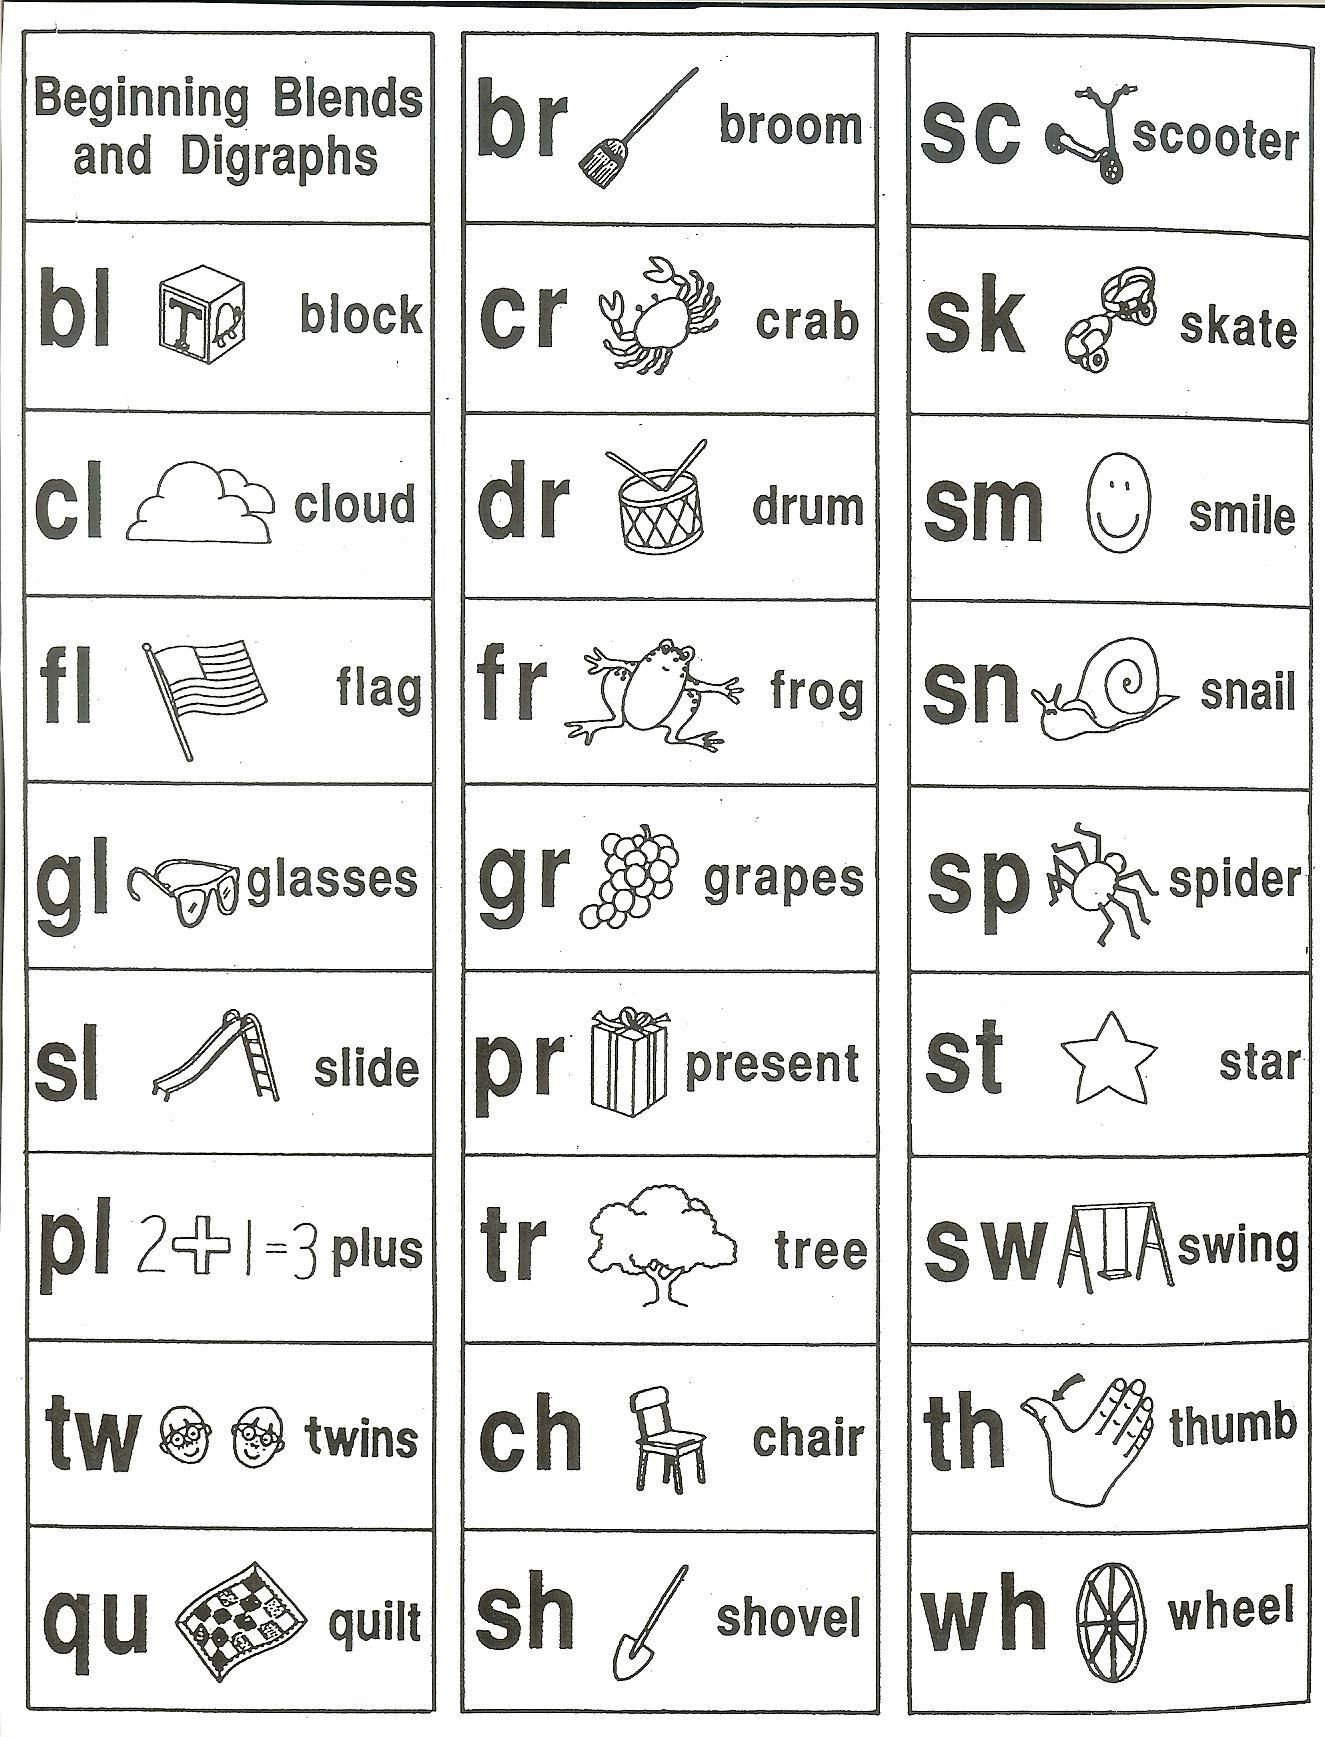 hight resolution of Second Grade Digraphs Worksheets   Printable Worksheets and Activities for  Teachers